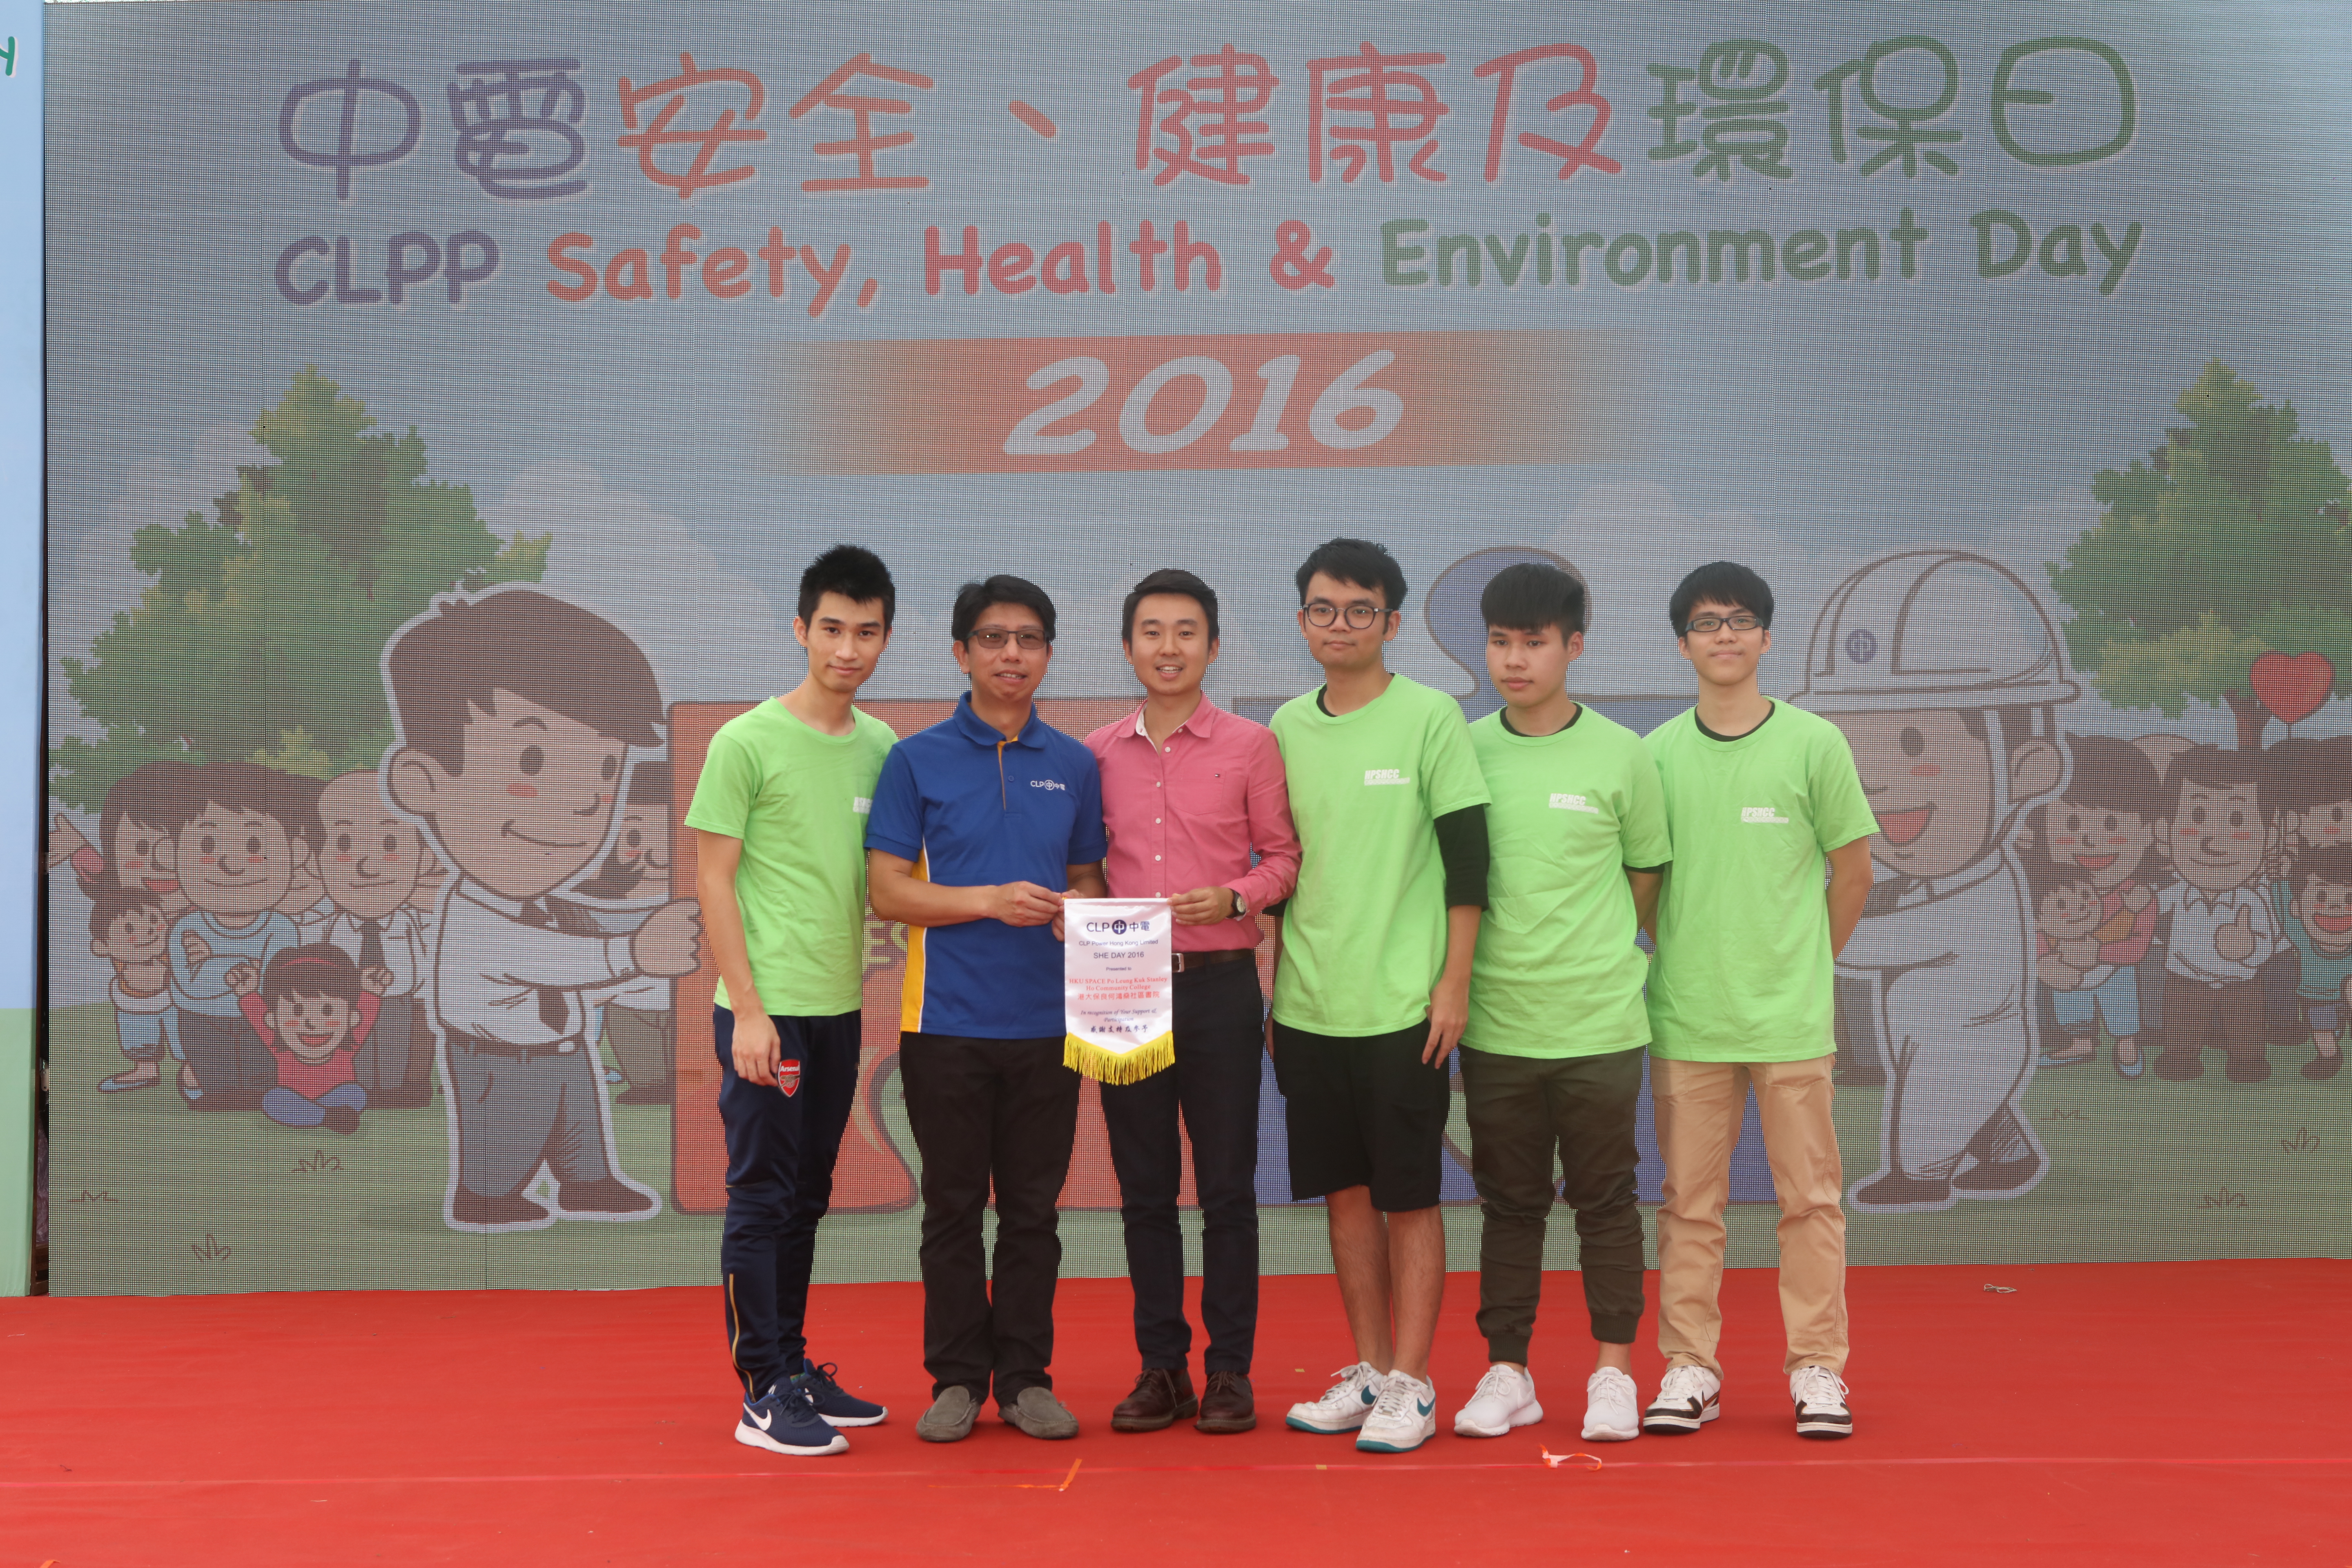 Nutrition promotion in CLP Safety, Health & Environment (SHE) Day 2016 - Photo - 9